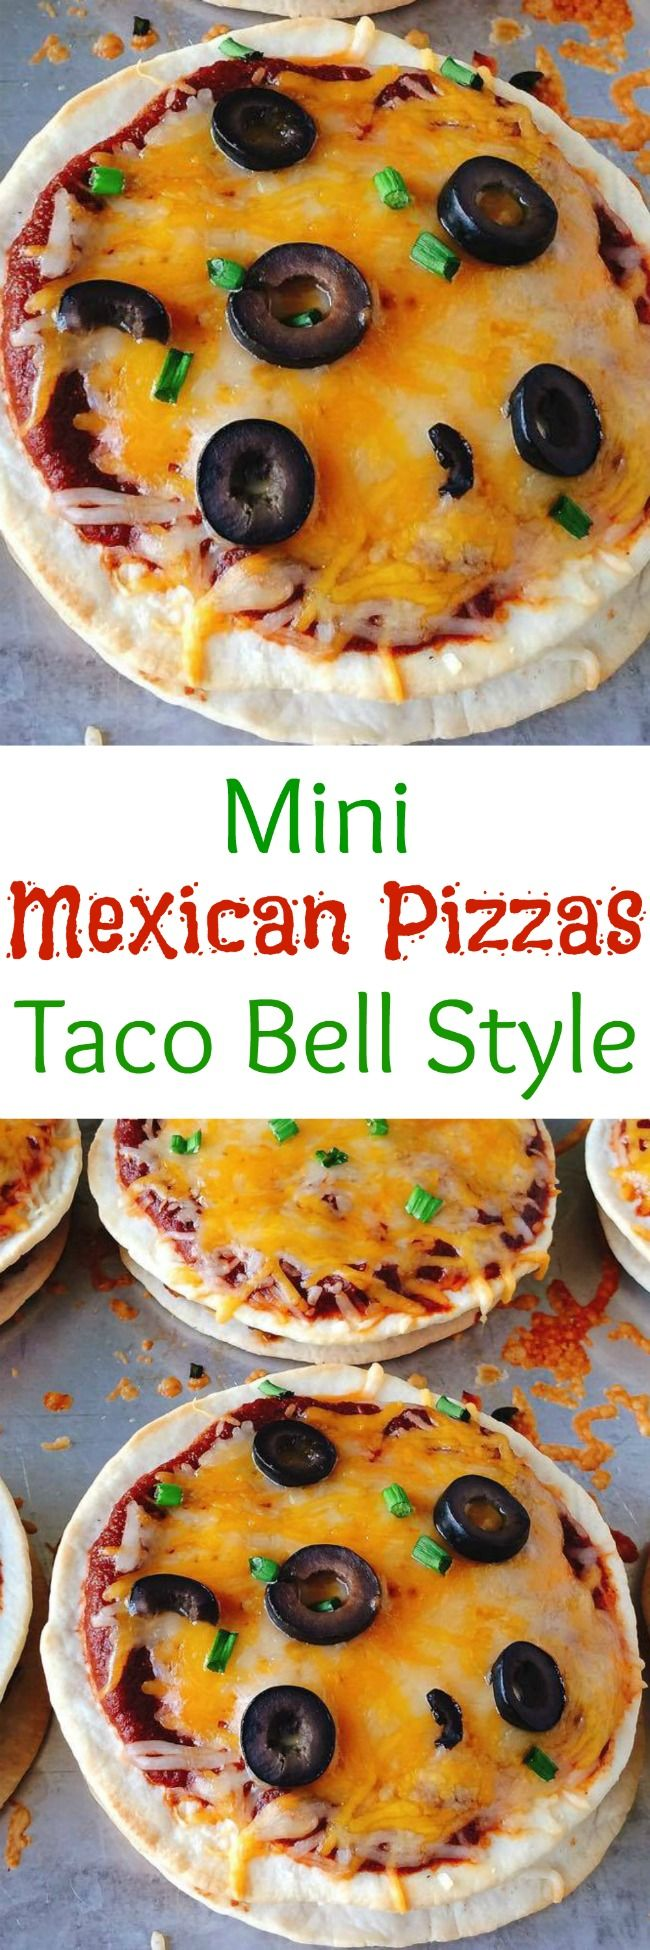 A recipe for homemade Mini Mexican Pizzas: Taco Bell Style. Just like the original only better because they are homemade!